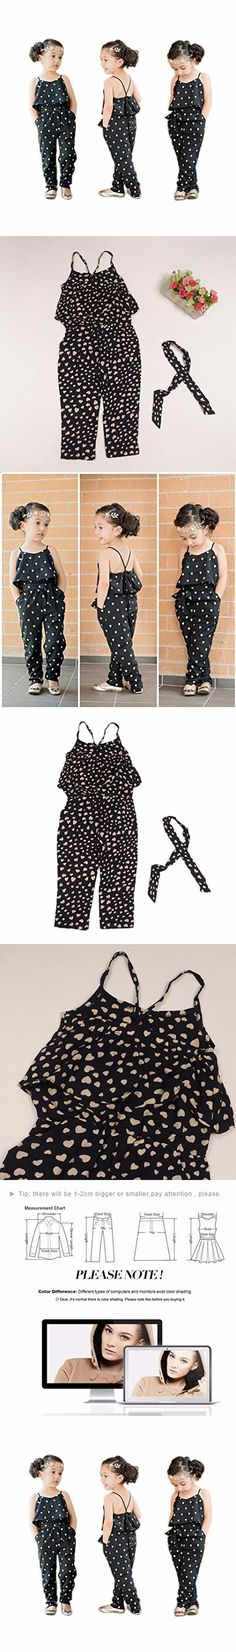 2016 Hot Fashion Toddlers Children Girls Love Heart Straps Jumpsuits by FEITONG